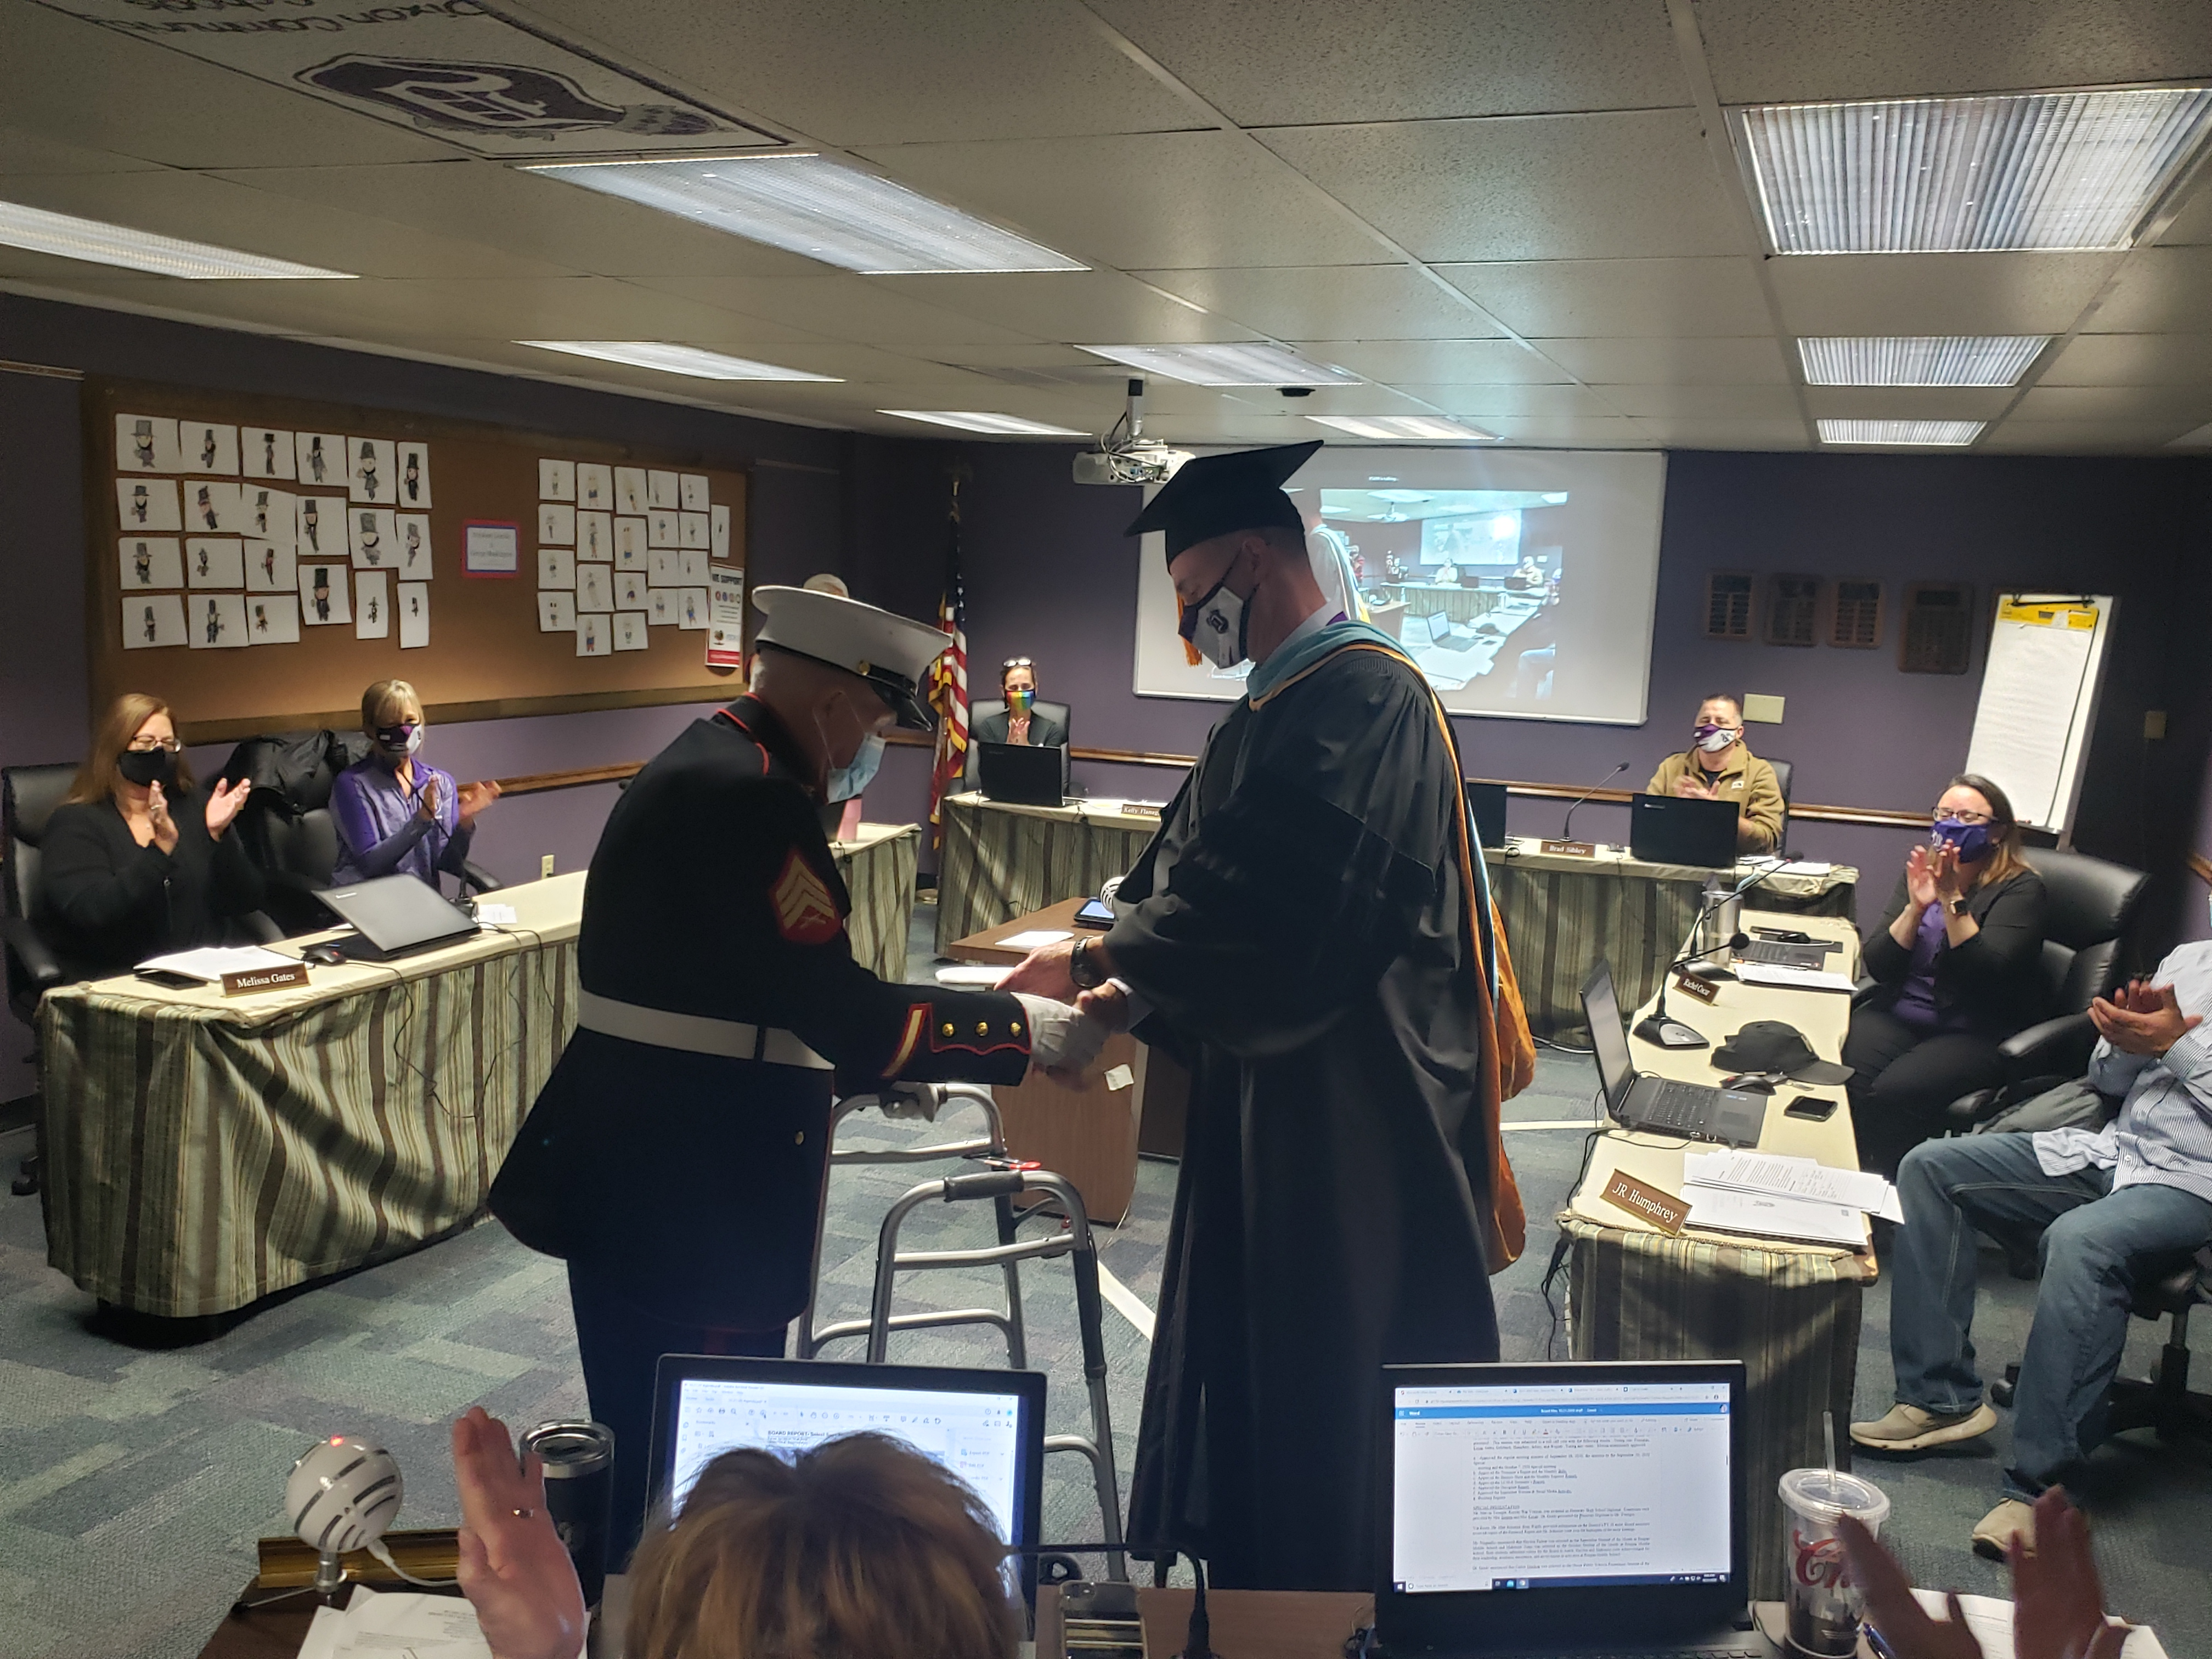 Marvin Younger receives his diploma from Dr. Grady